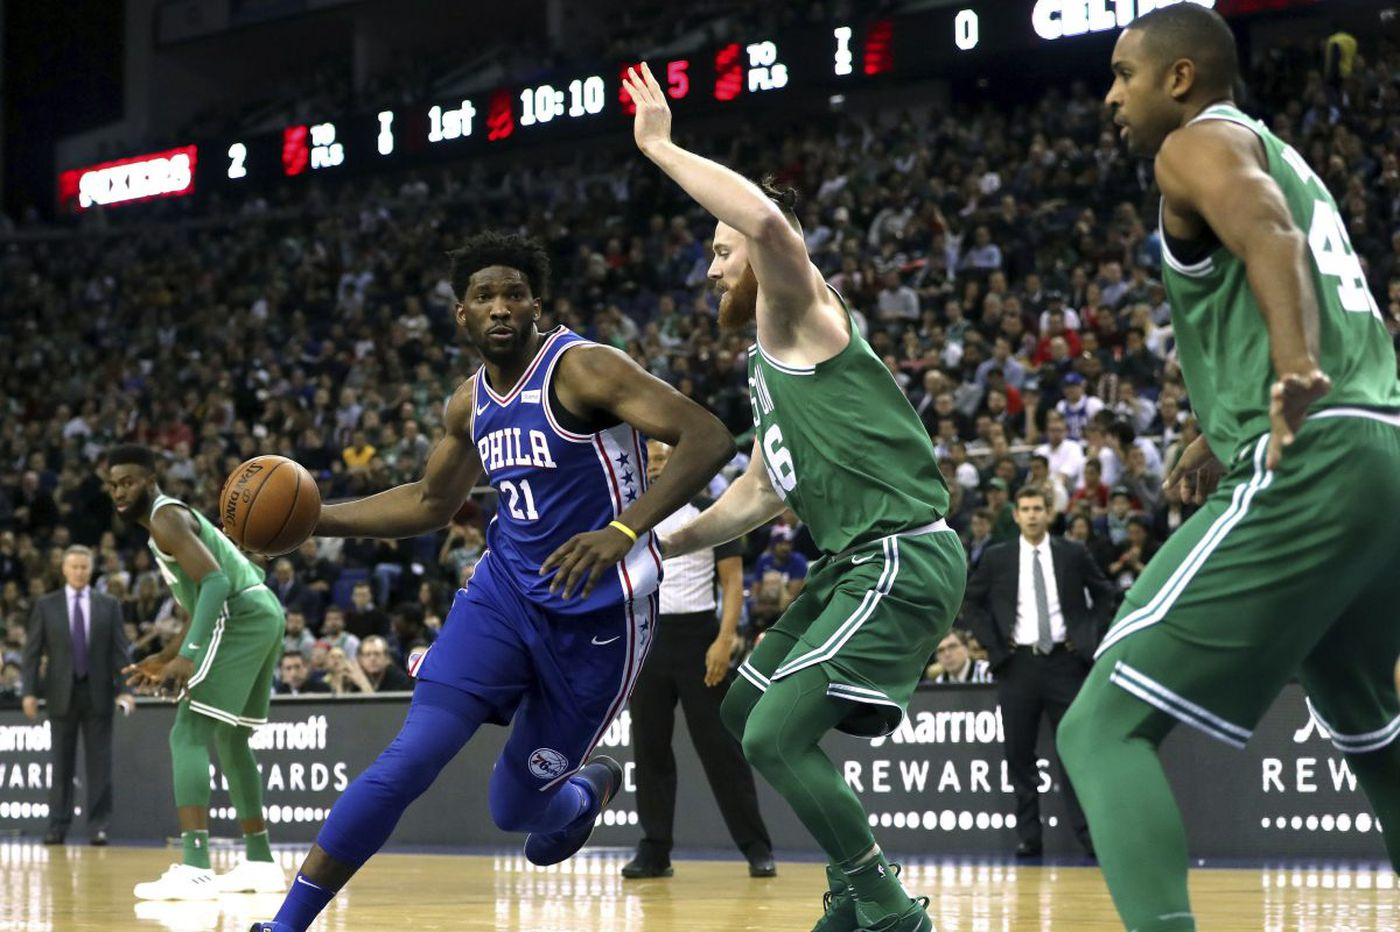 Sixers blow 22-point lead en route to 114-103 loss to Boston Celtics